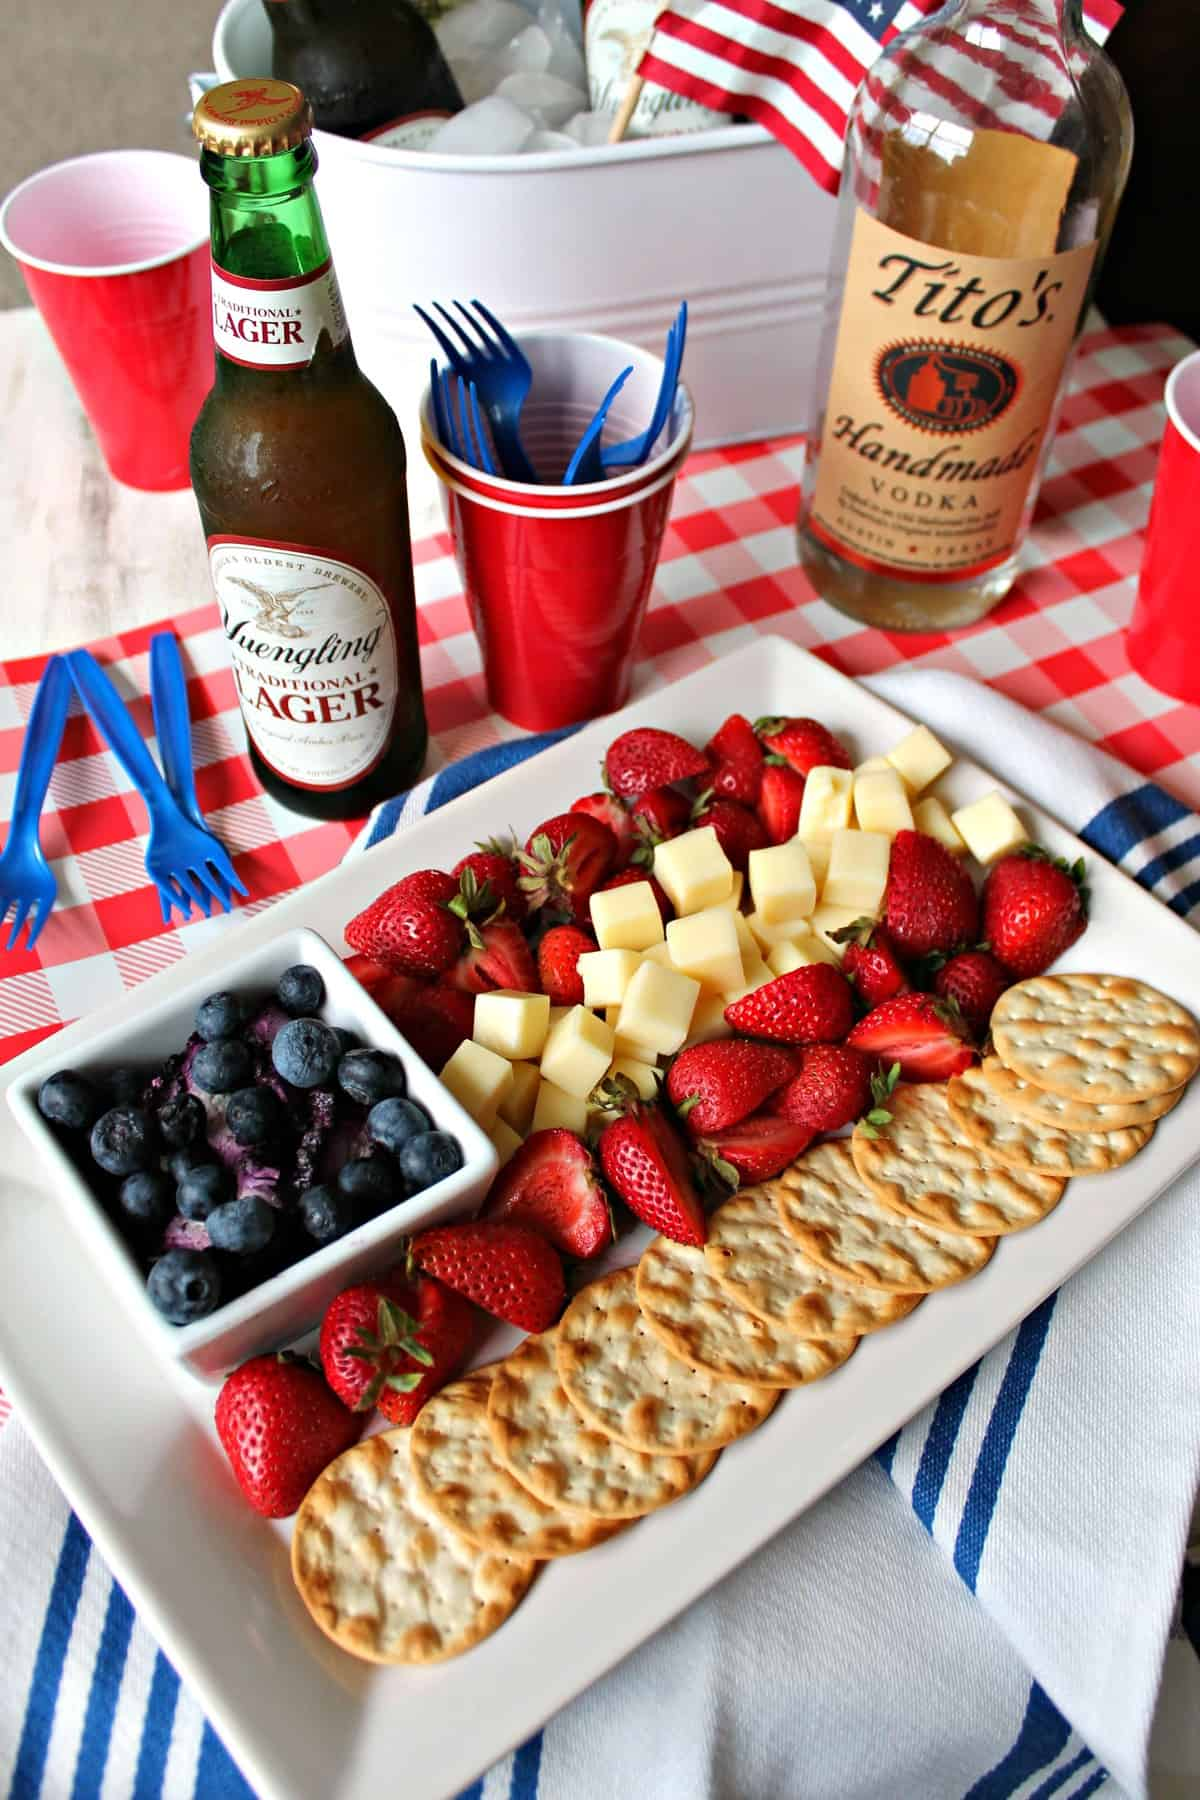 This fruit and cheese platter is the perfect 4th of July party snack